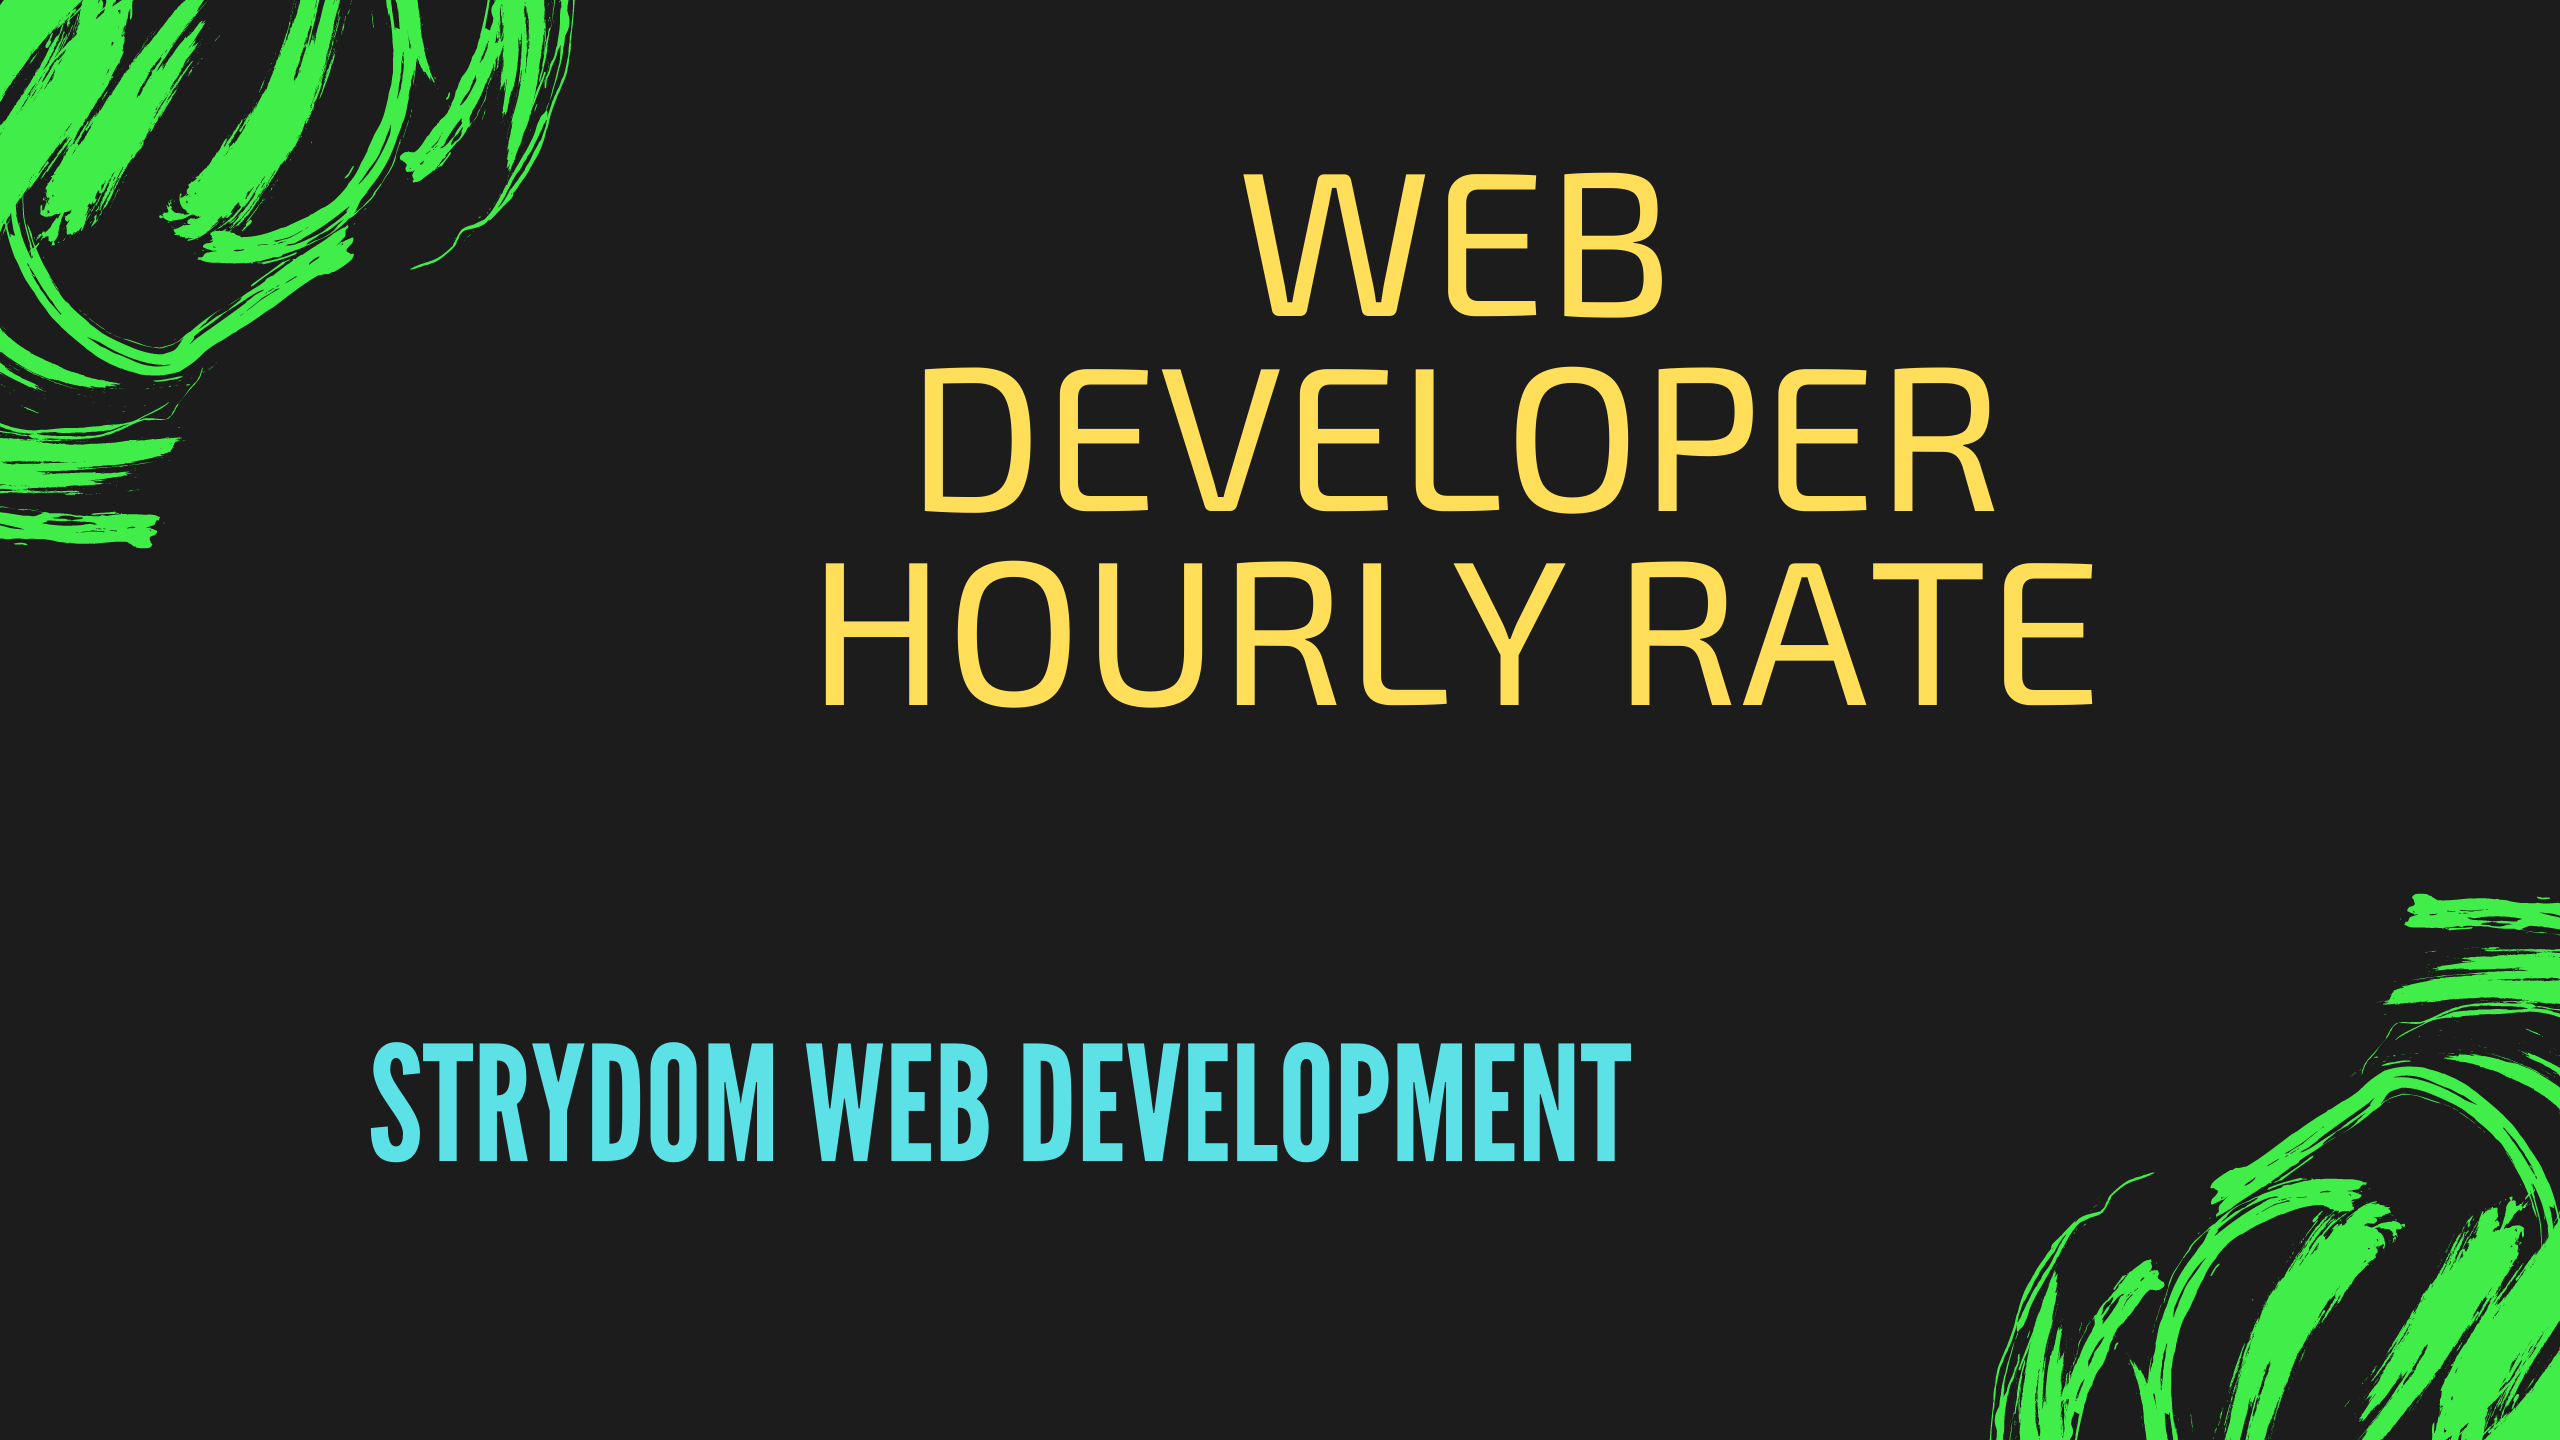 Web Developer Hourly Rate